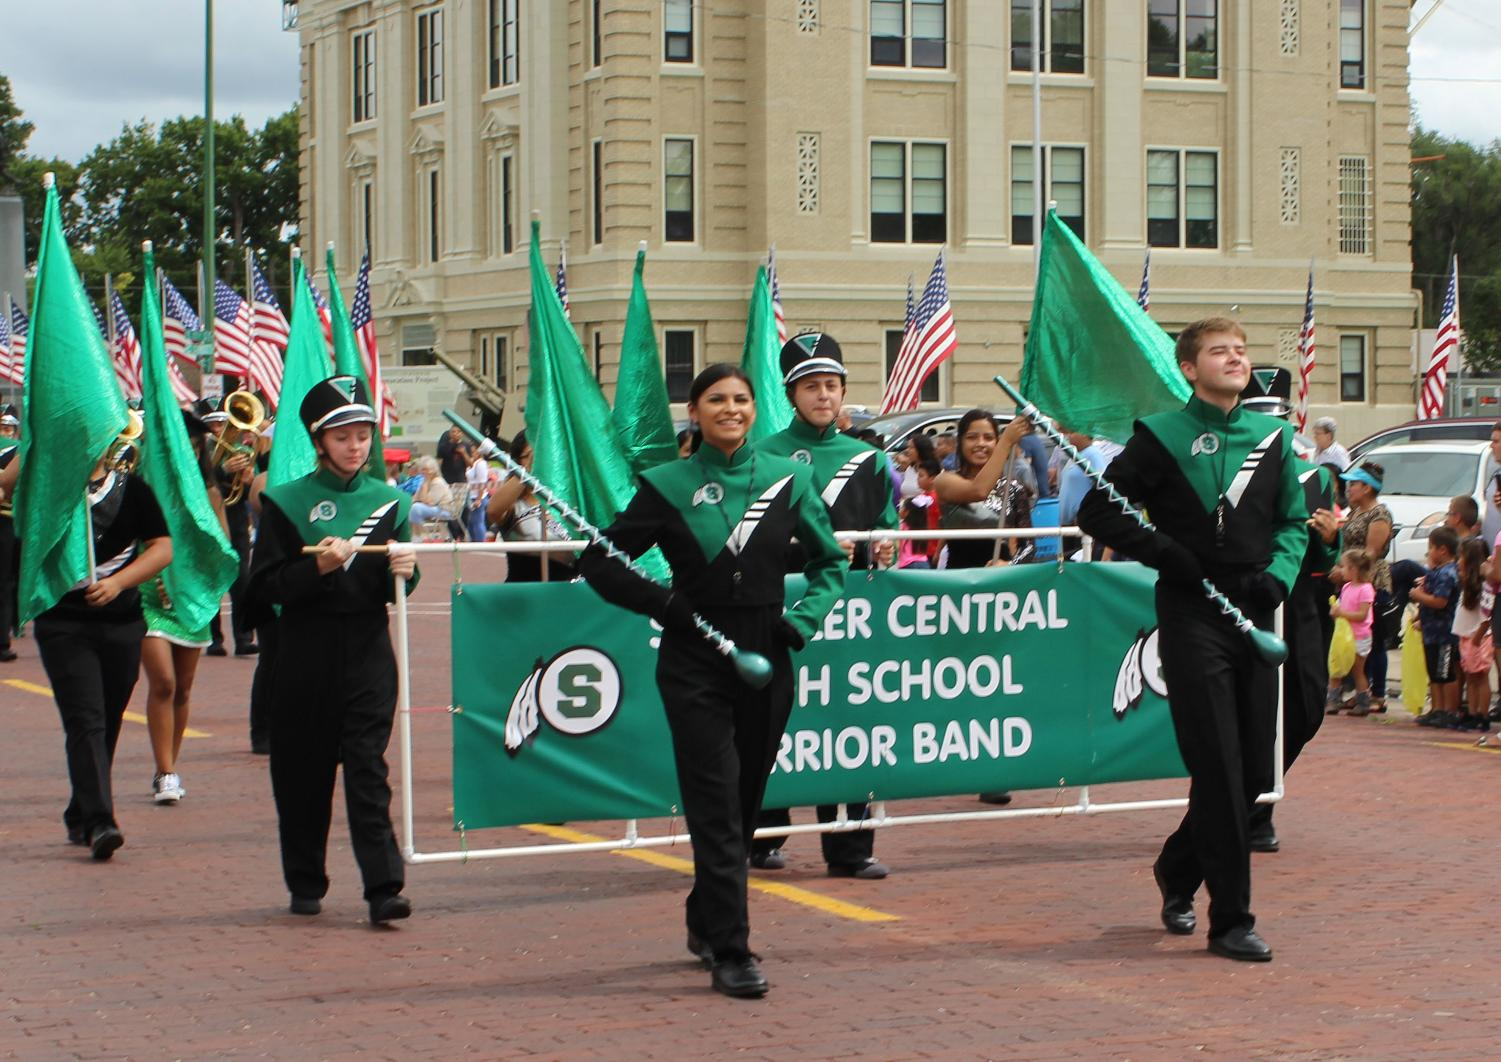 Drum Majors, Pammela Garcia and Kasey Brabec, lead the band in the Schuyler Labor Day Parade.